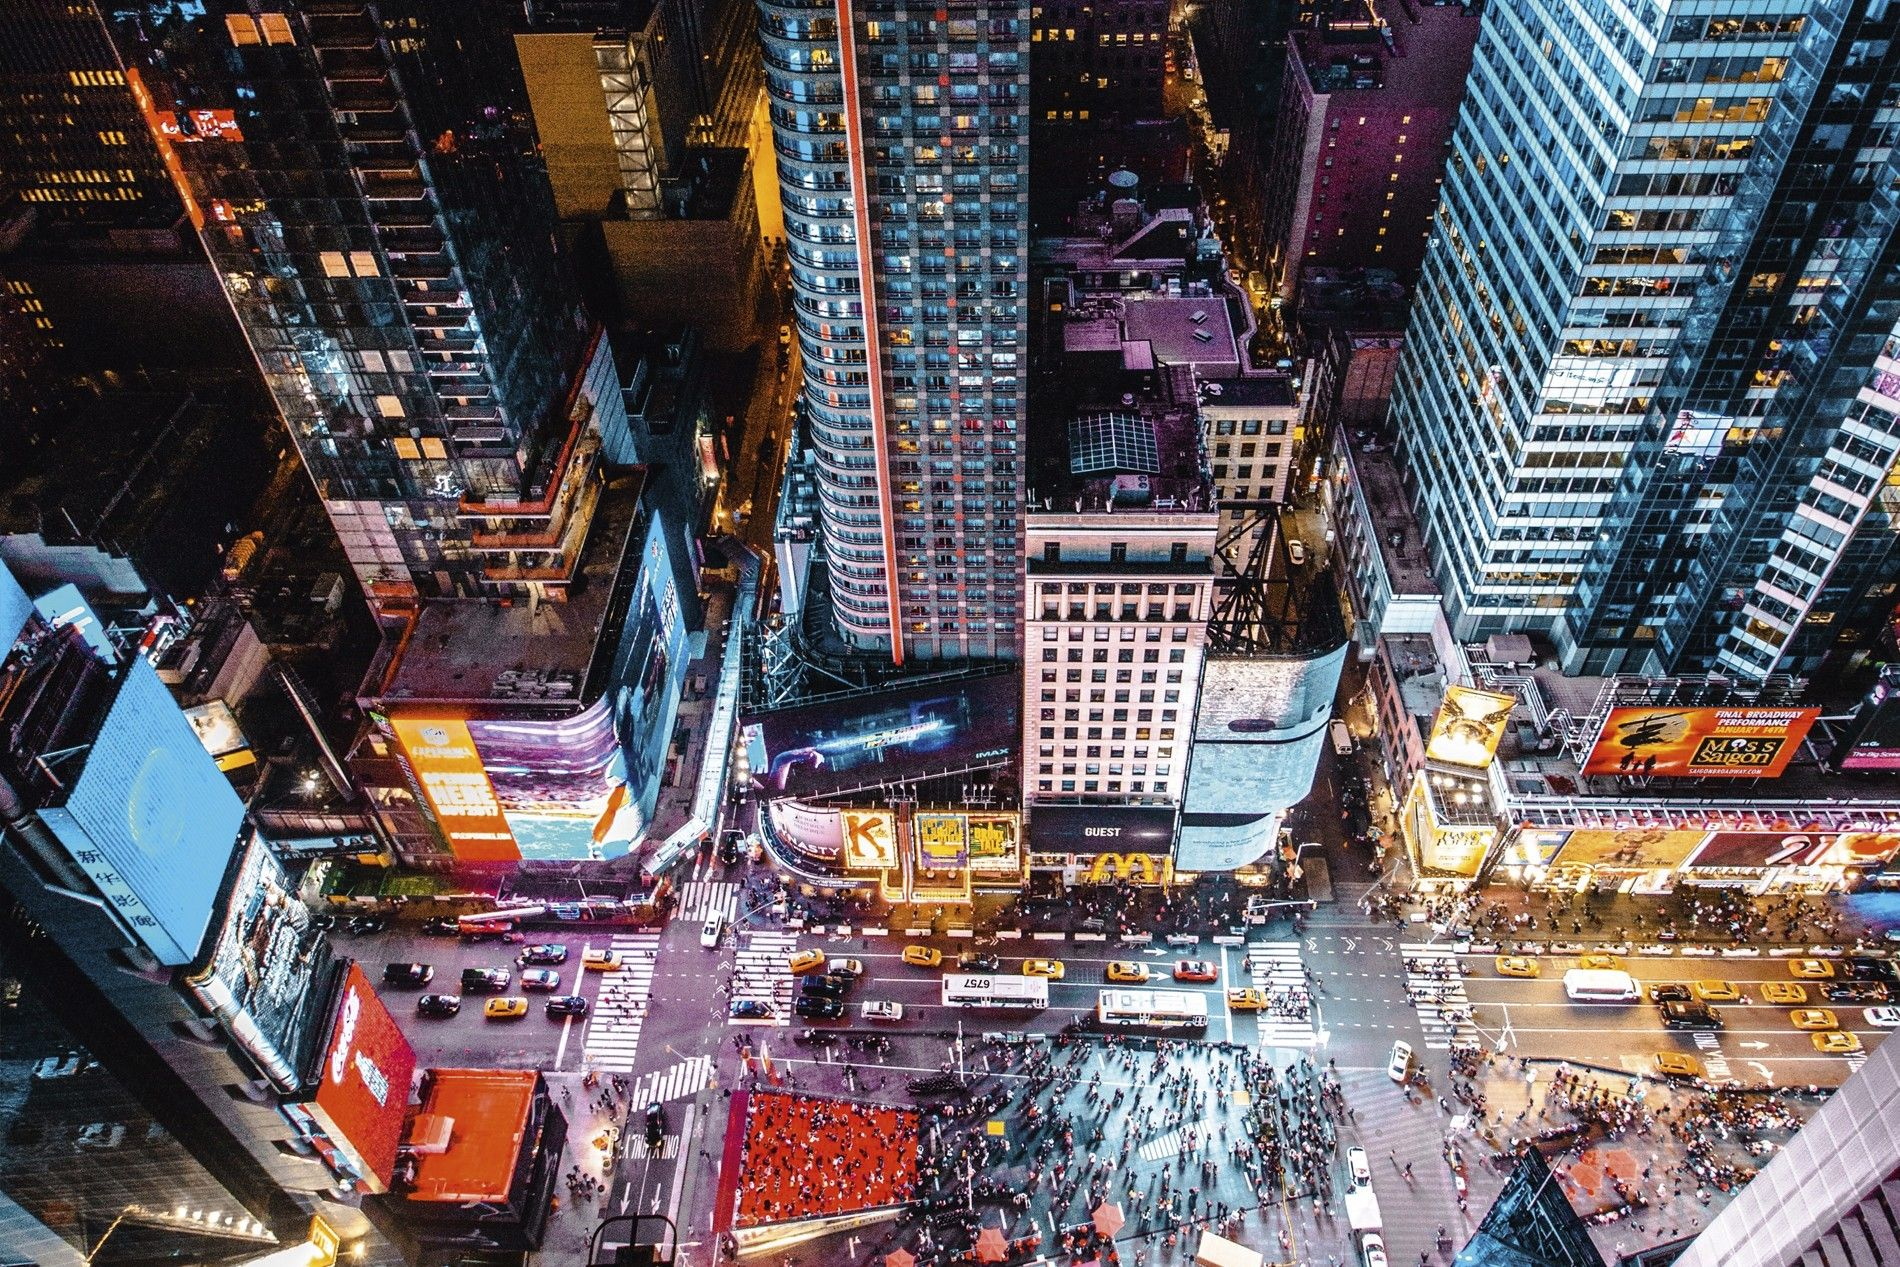 Looking down on Times Square, New York City.